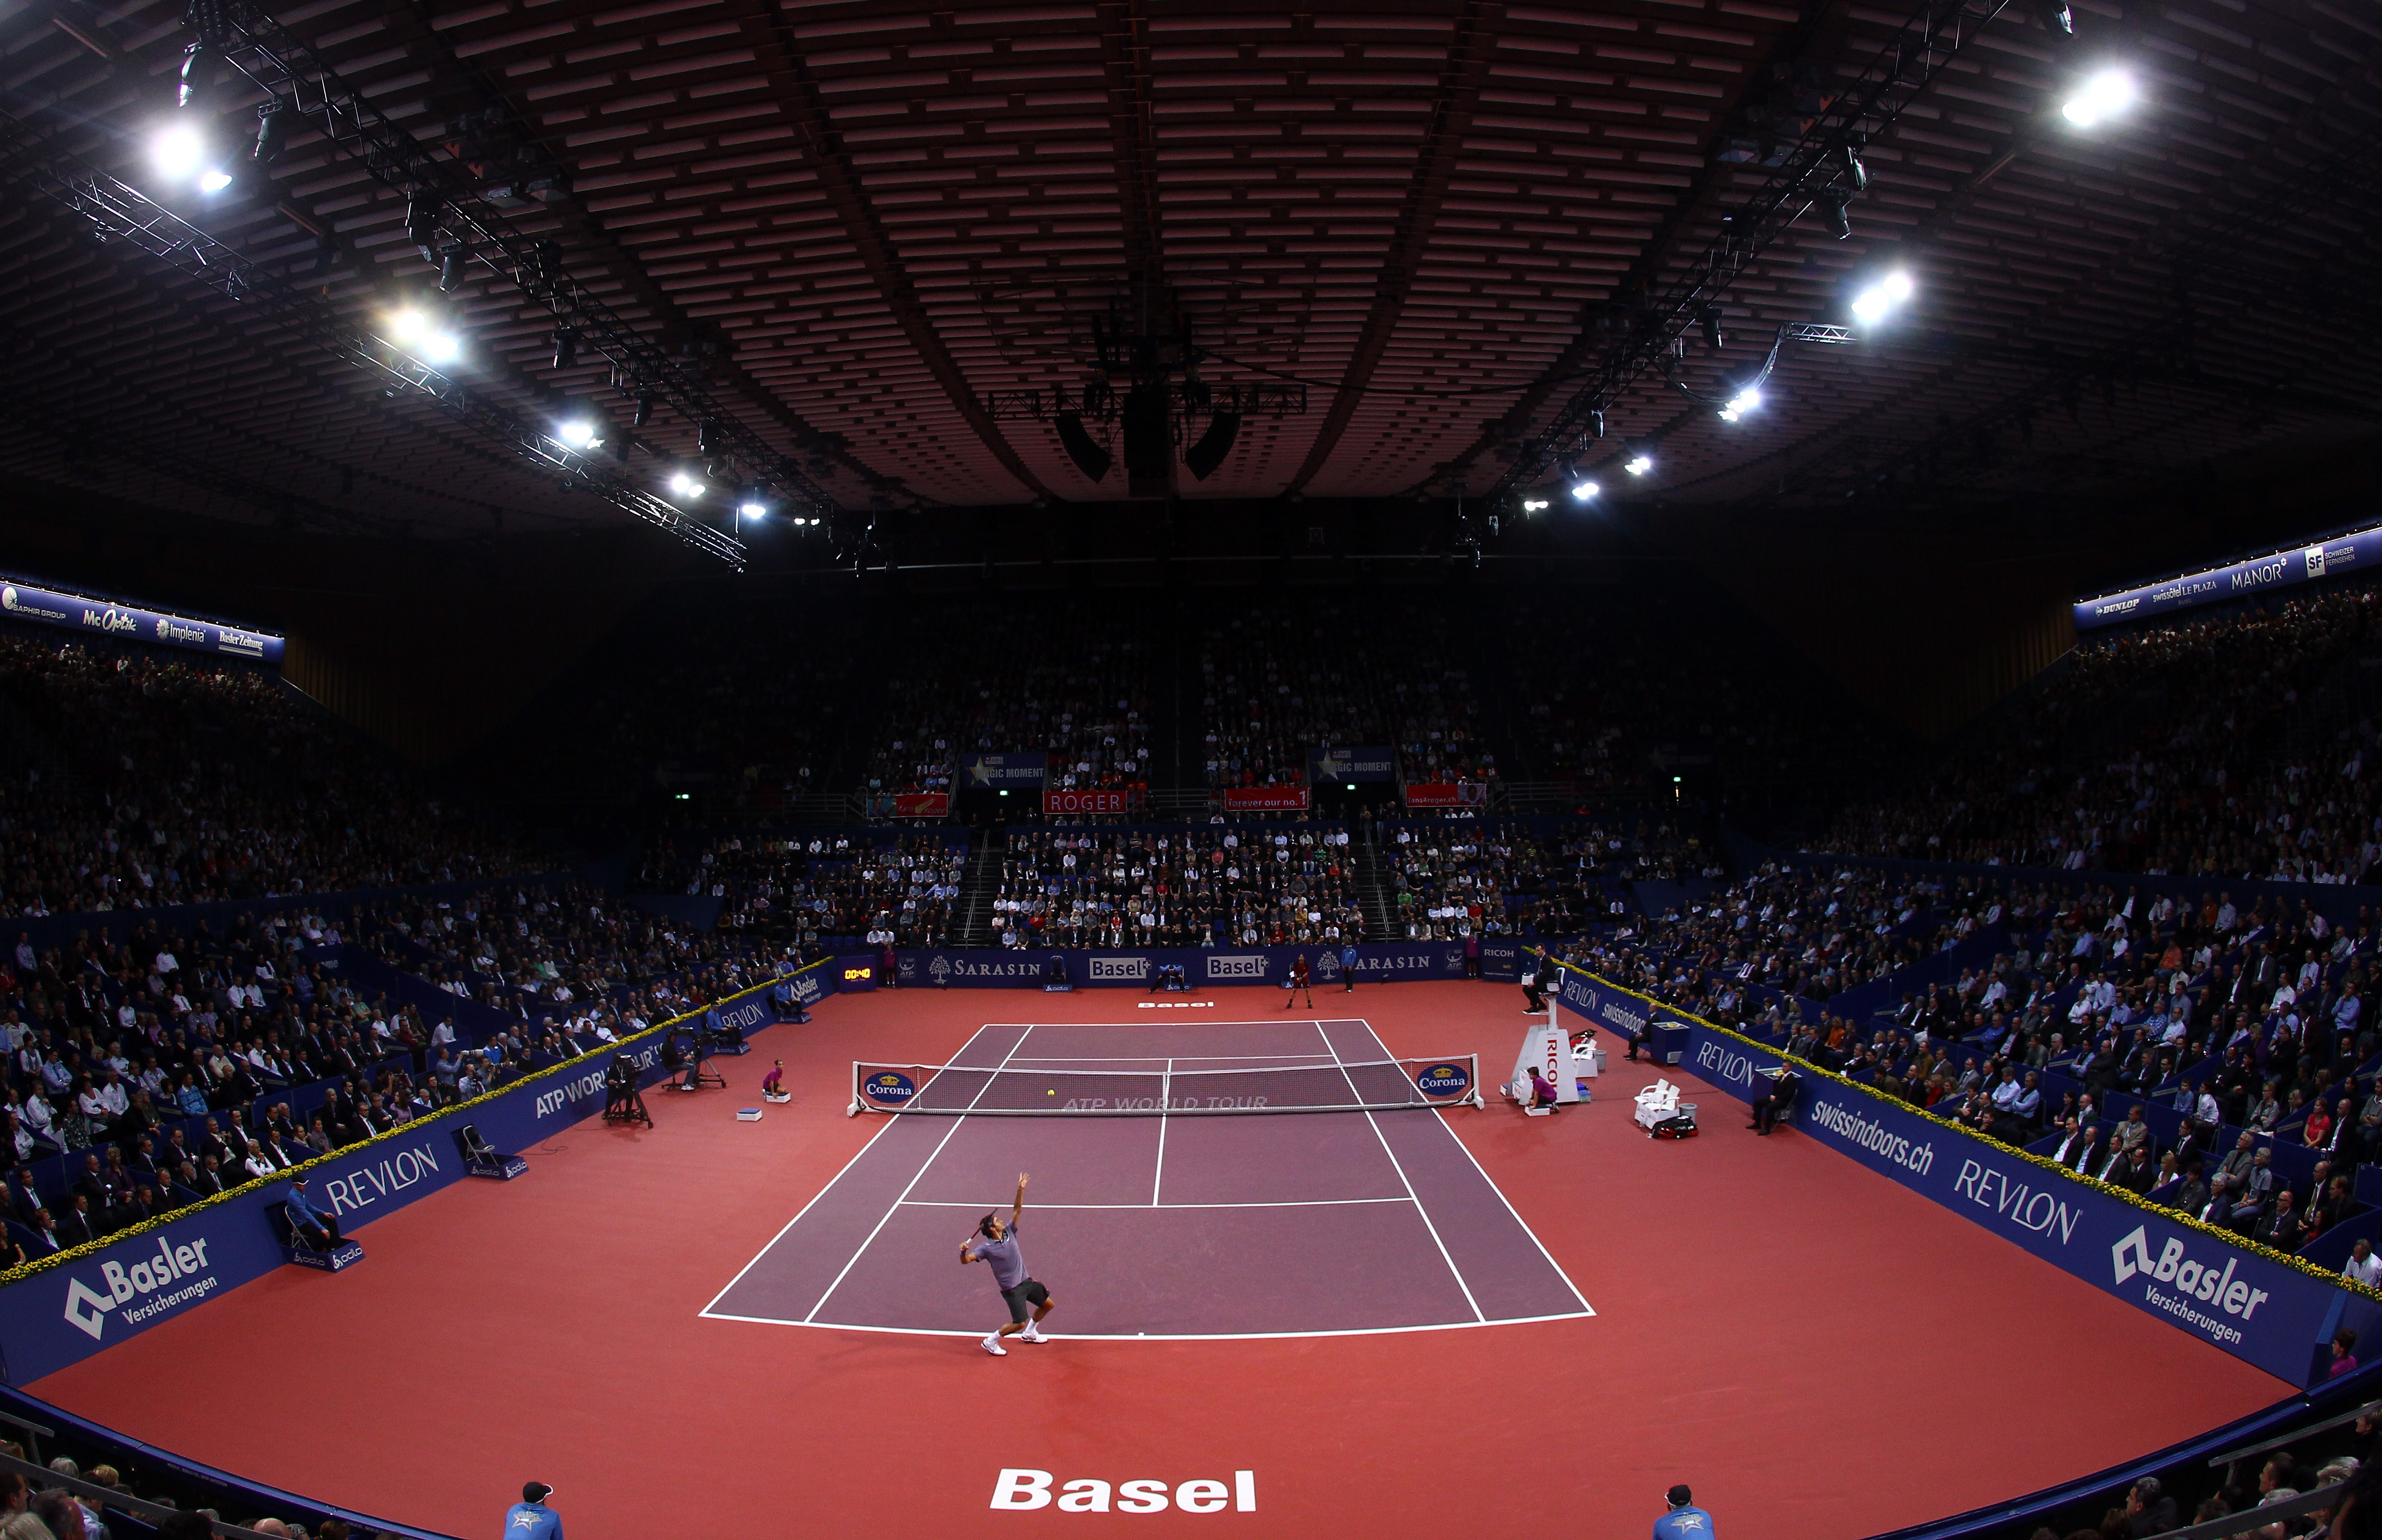 BASEL, SWITZERLAND - NOVEMBER 03:  A general view of Roger Federer of Switzerland serving to Janko Tipsarevic of Serbia during Day Three of the Davidoff Swiss Indoors Tennis at St Jakobshalle on November 3, 2010 in Basel, Switzerland.  (Photo by Julian Fi